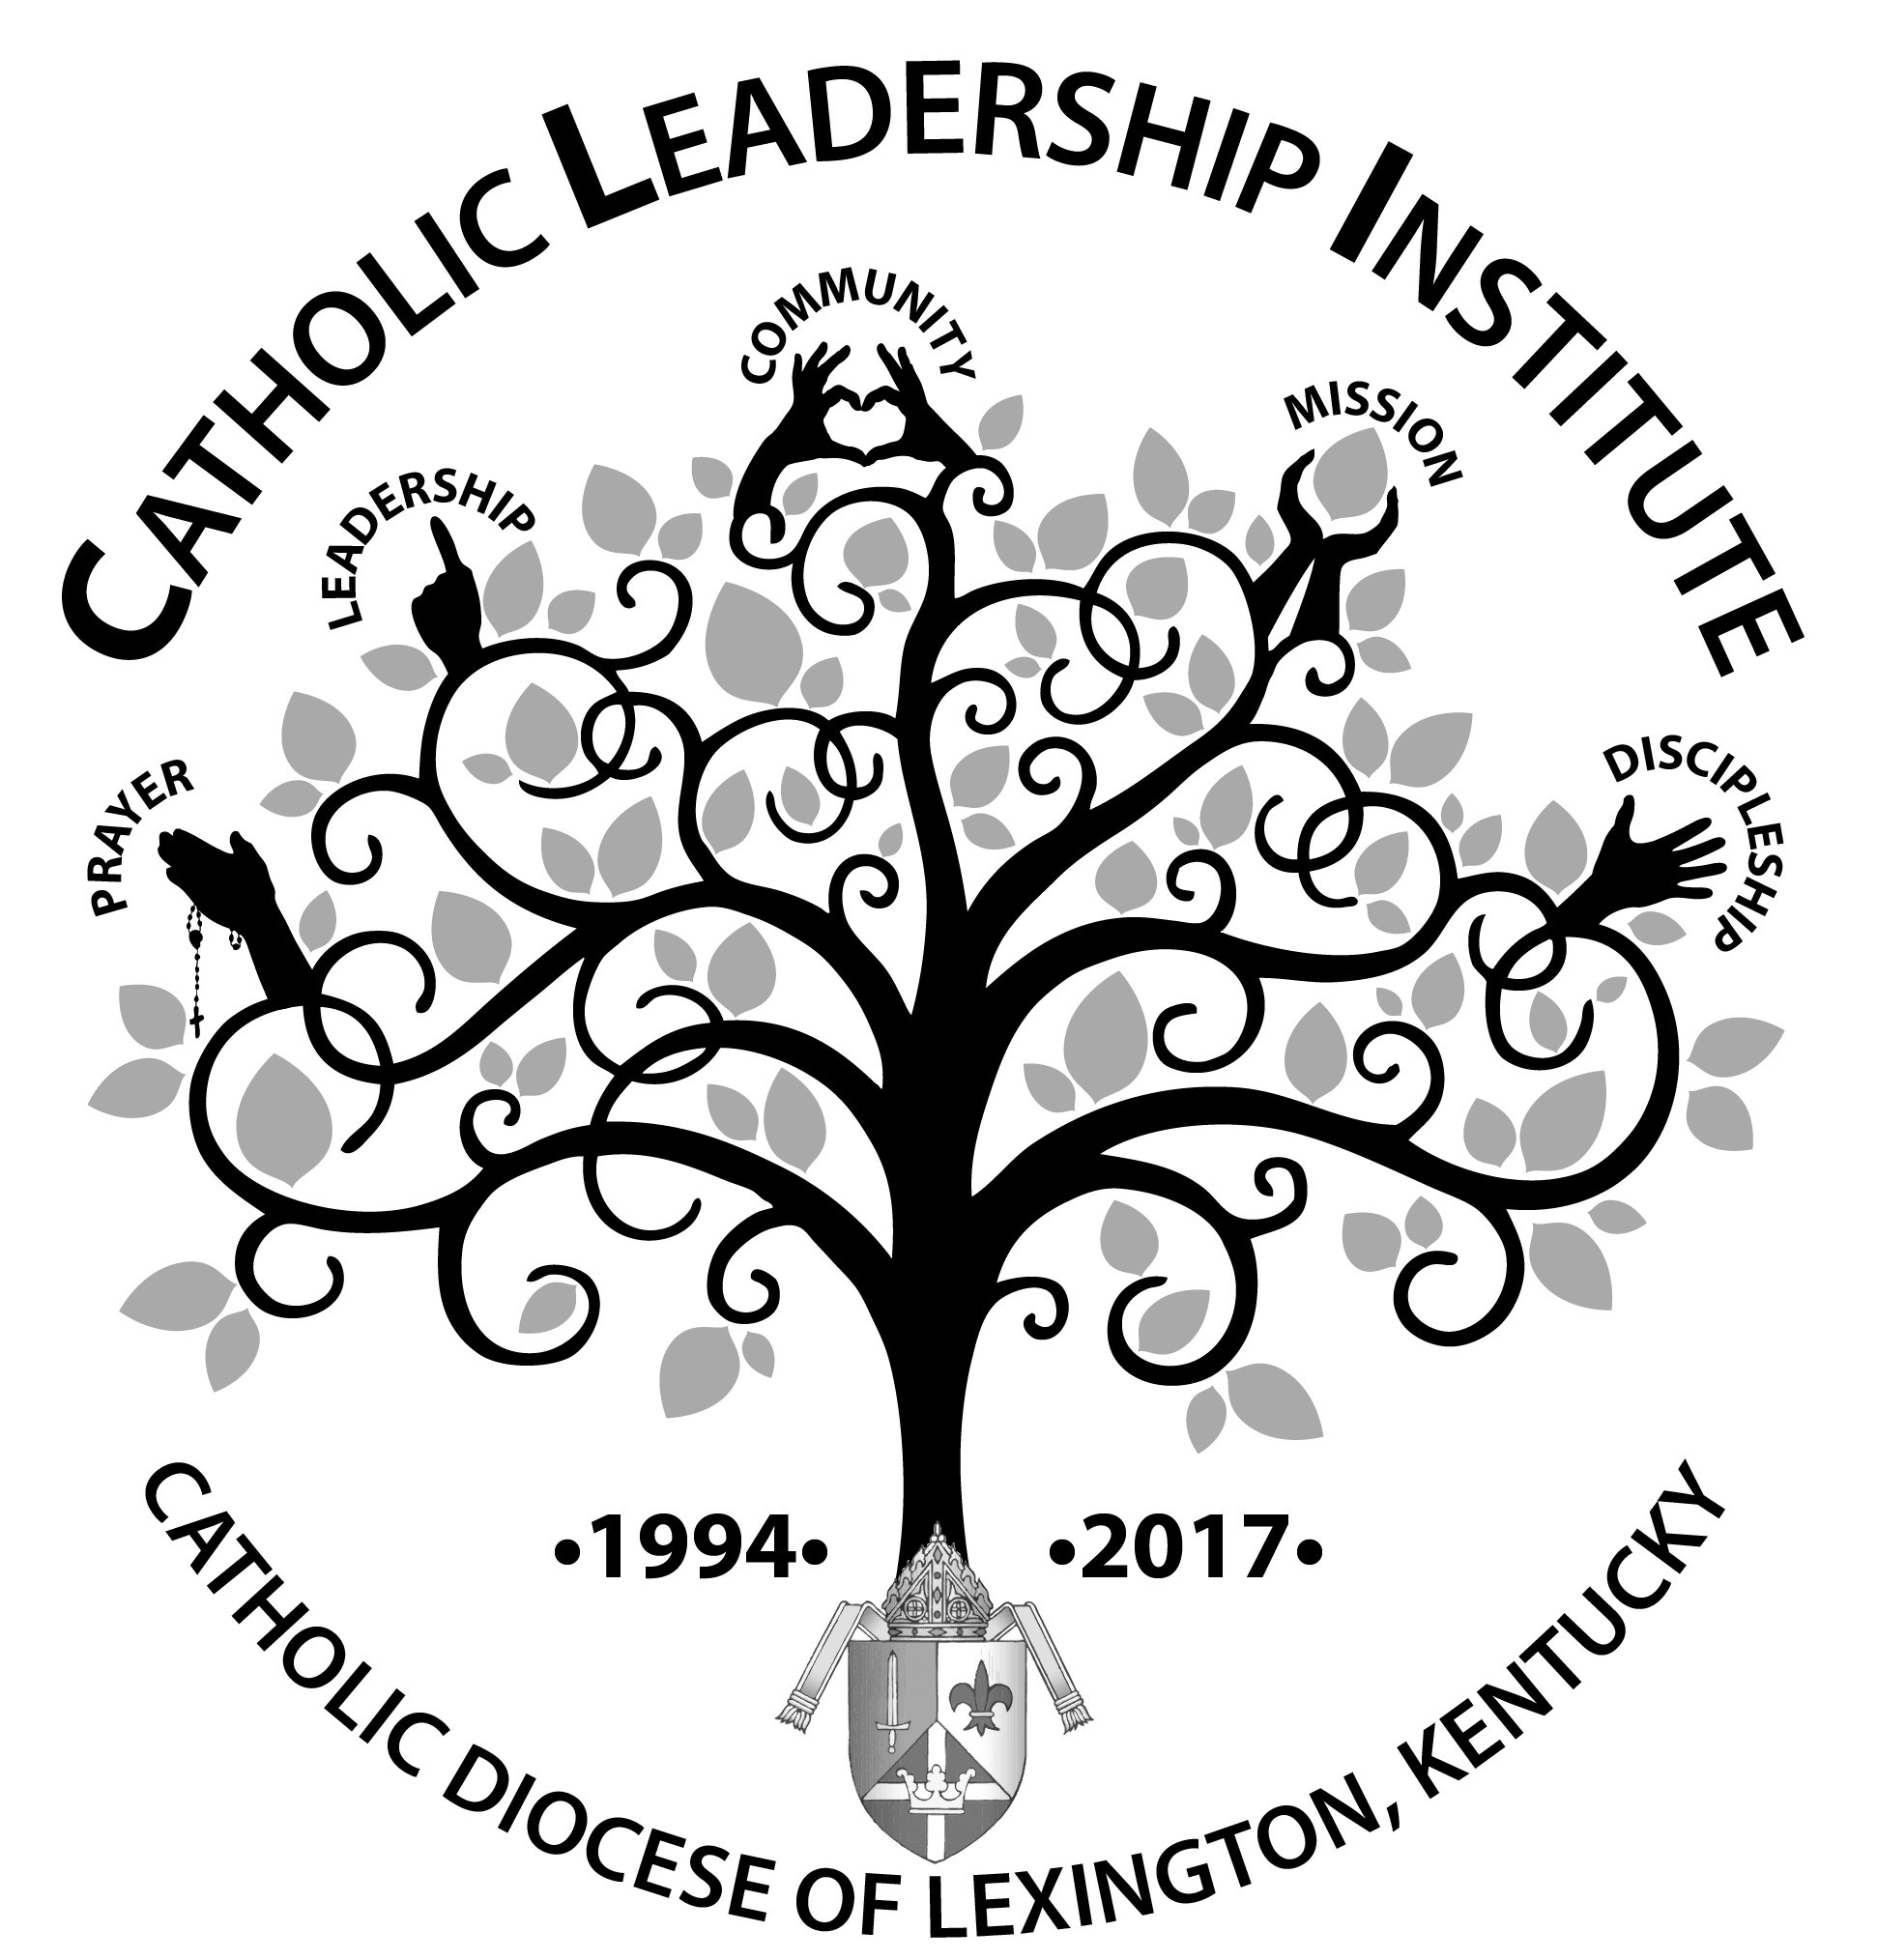 Catholic Leadership Institute (Lexington)